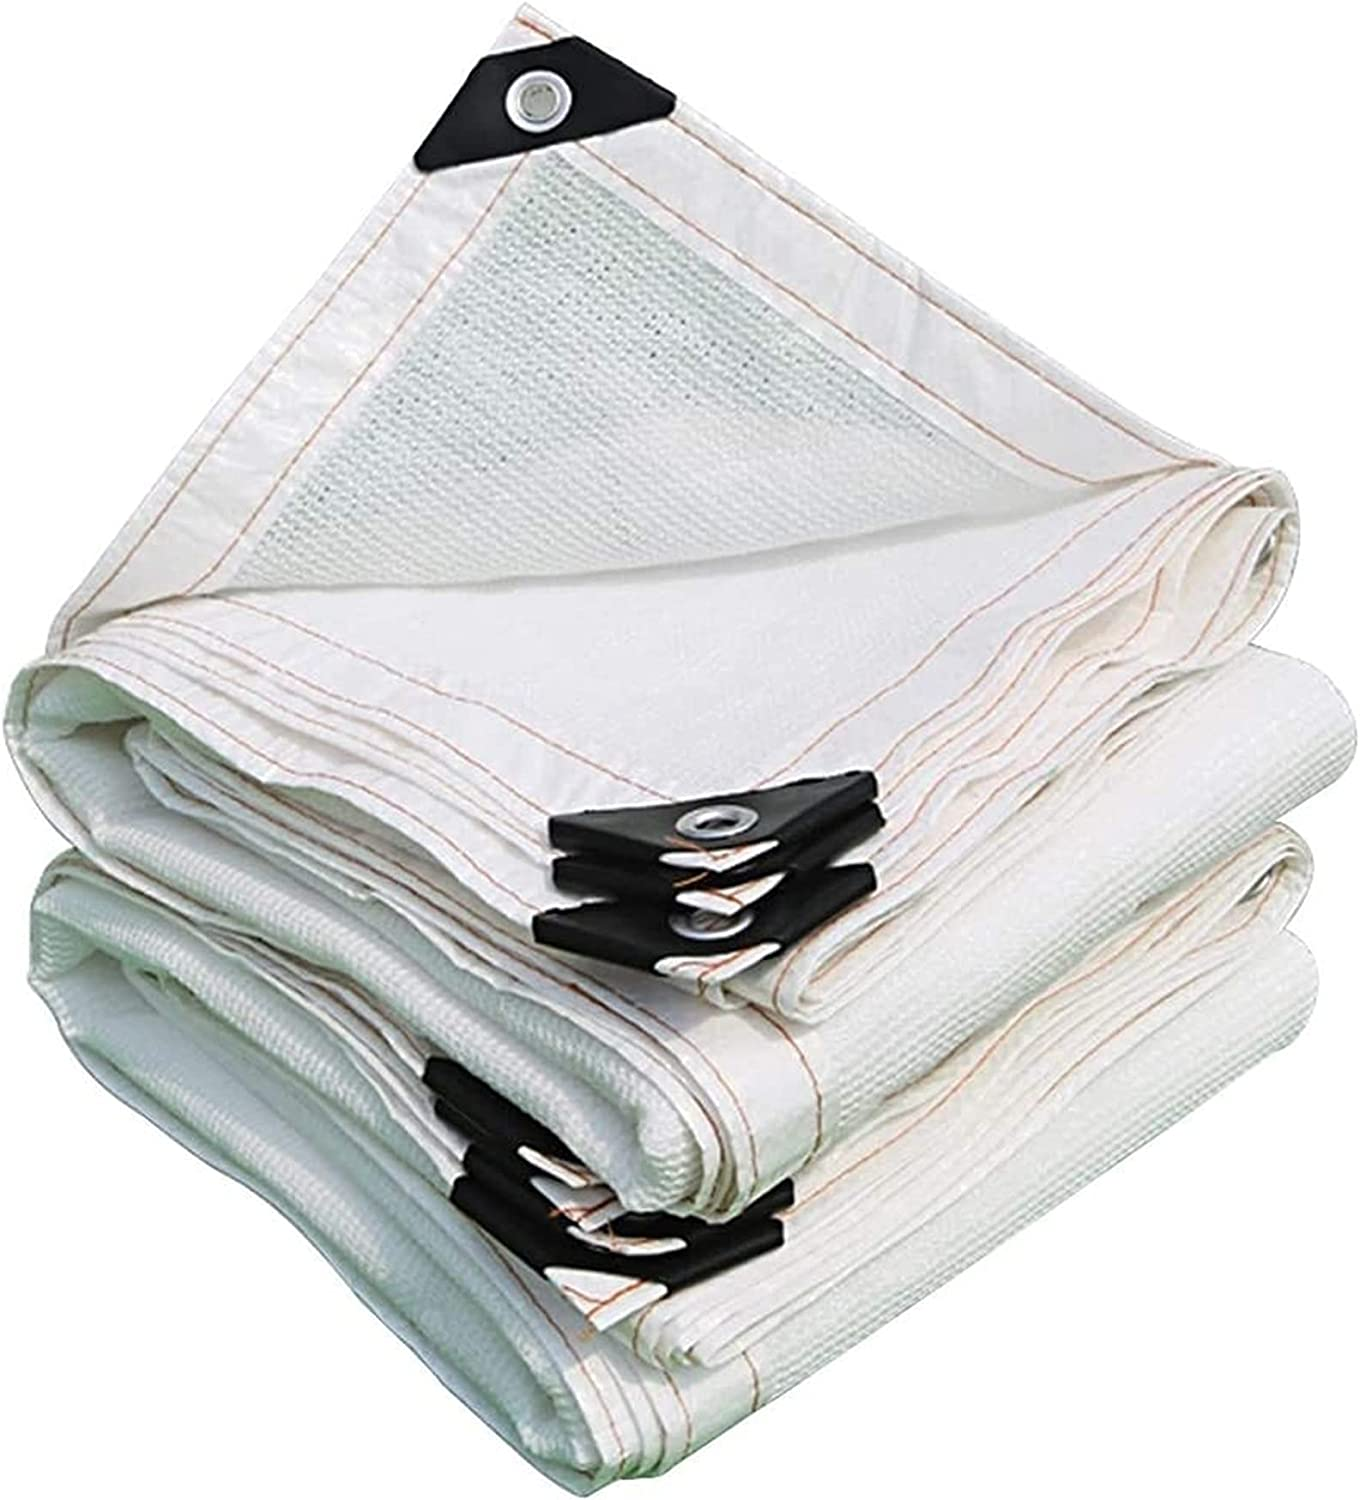 QBV 90% White Shade Cloth with Mesh Outdoor Sun I NEW before selling Alternative dealer Heat Grommets